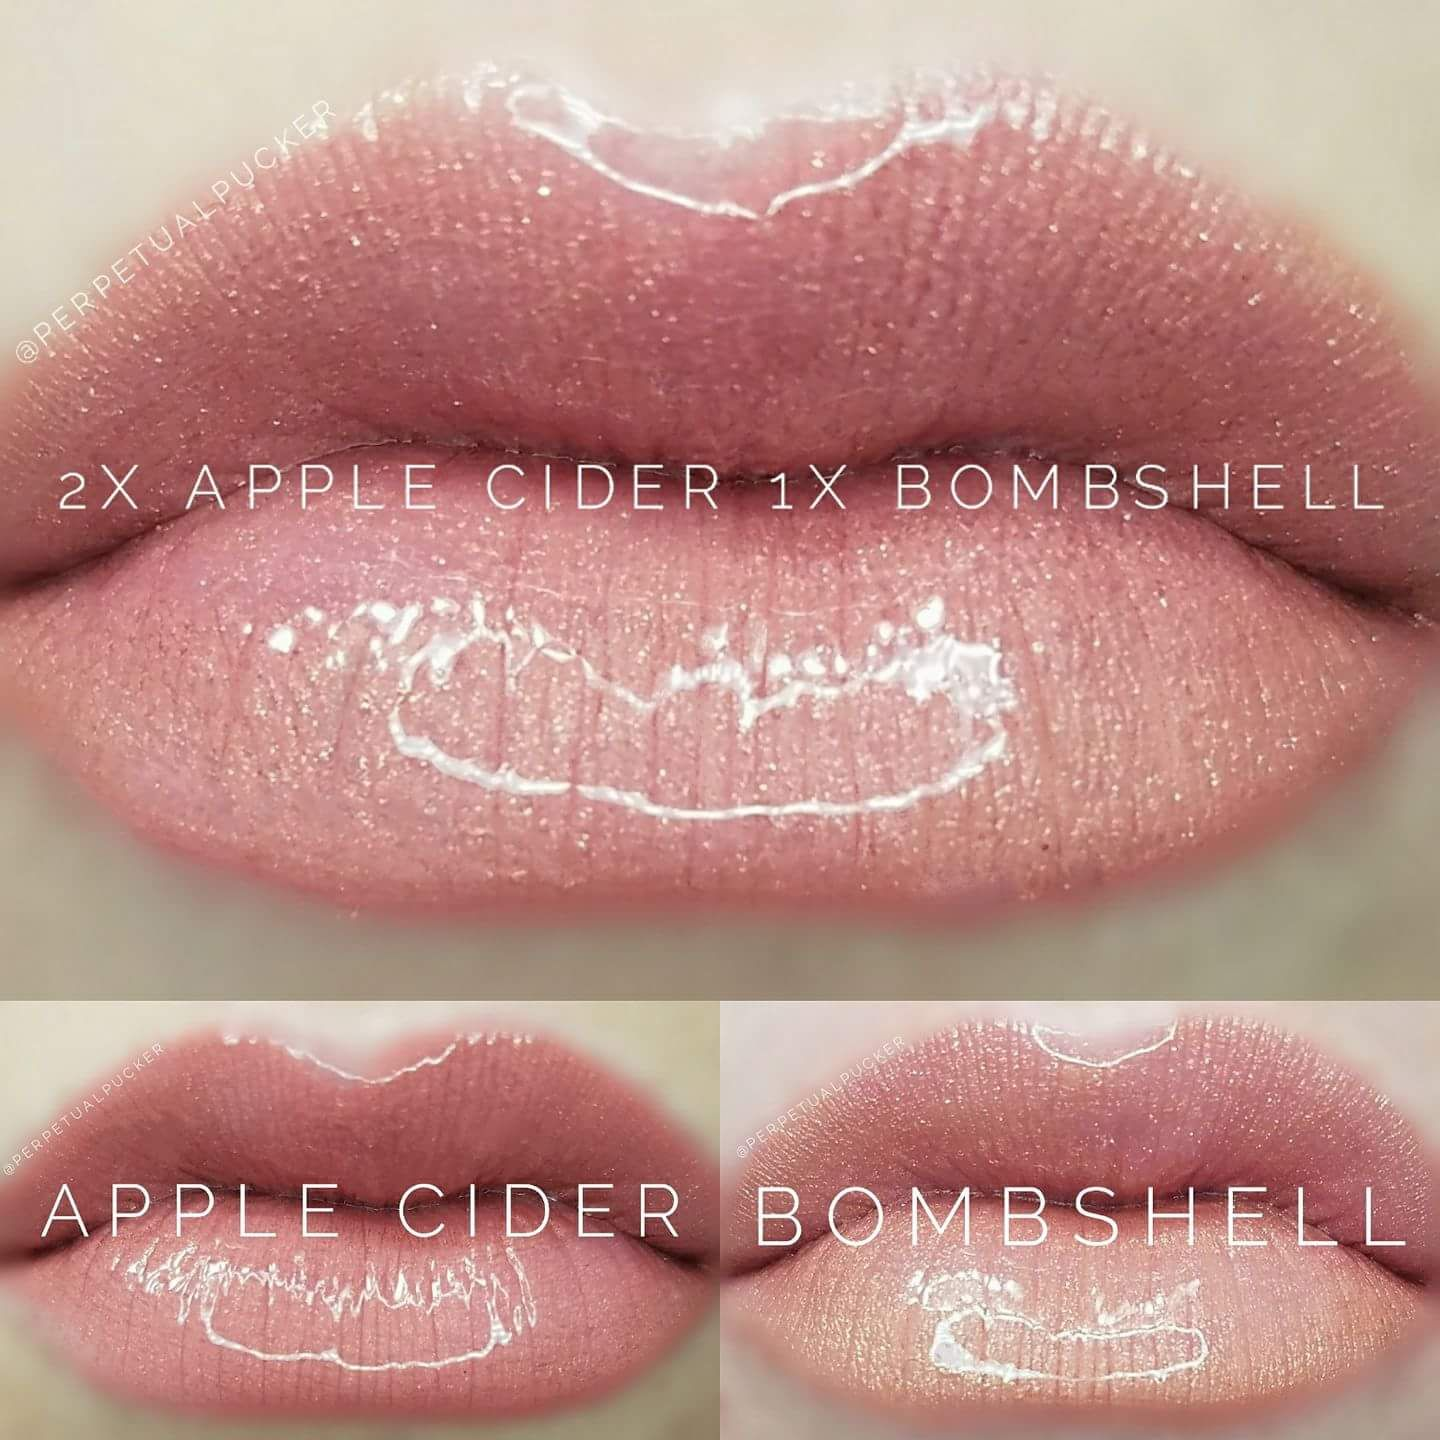 lipsense color blend  25 per color  20 for sealing gloss  lip color that lasts all day 4